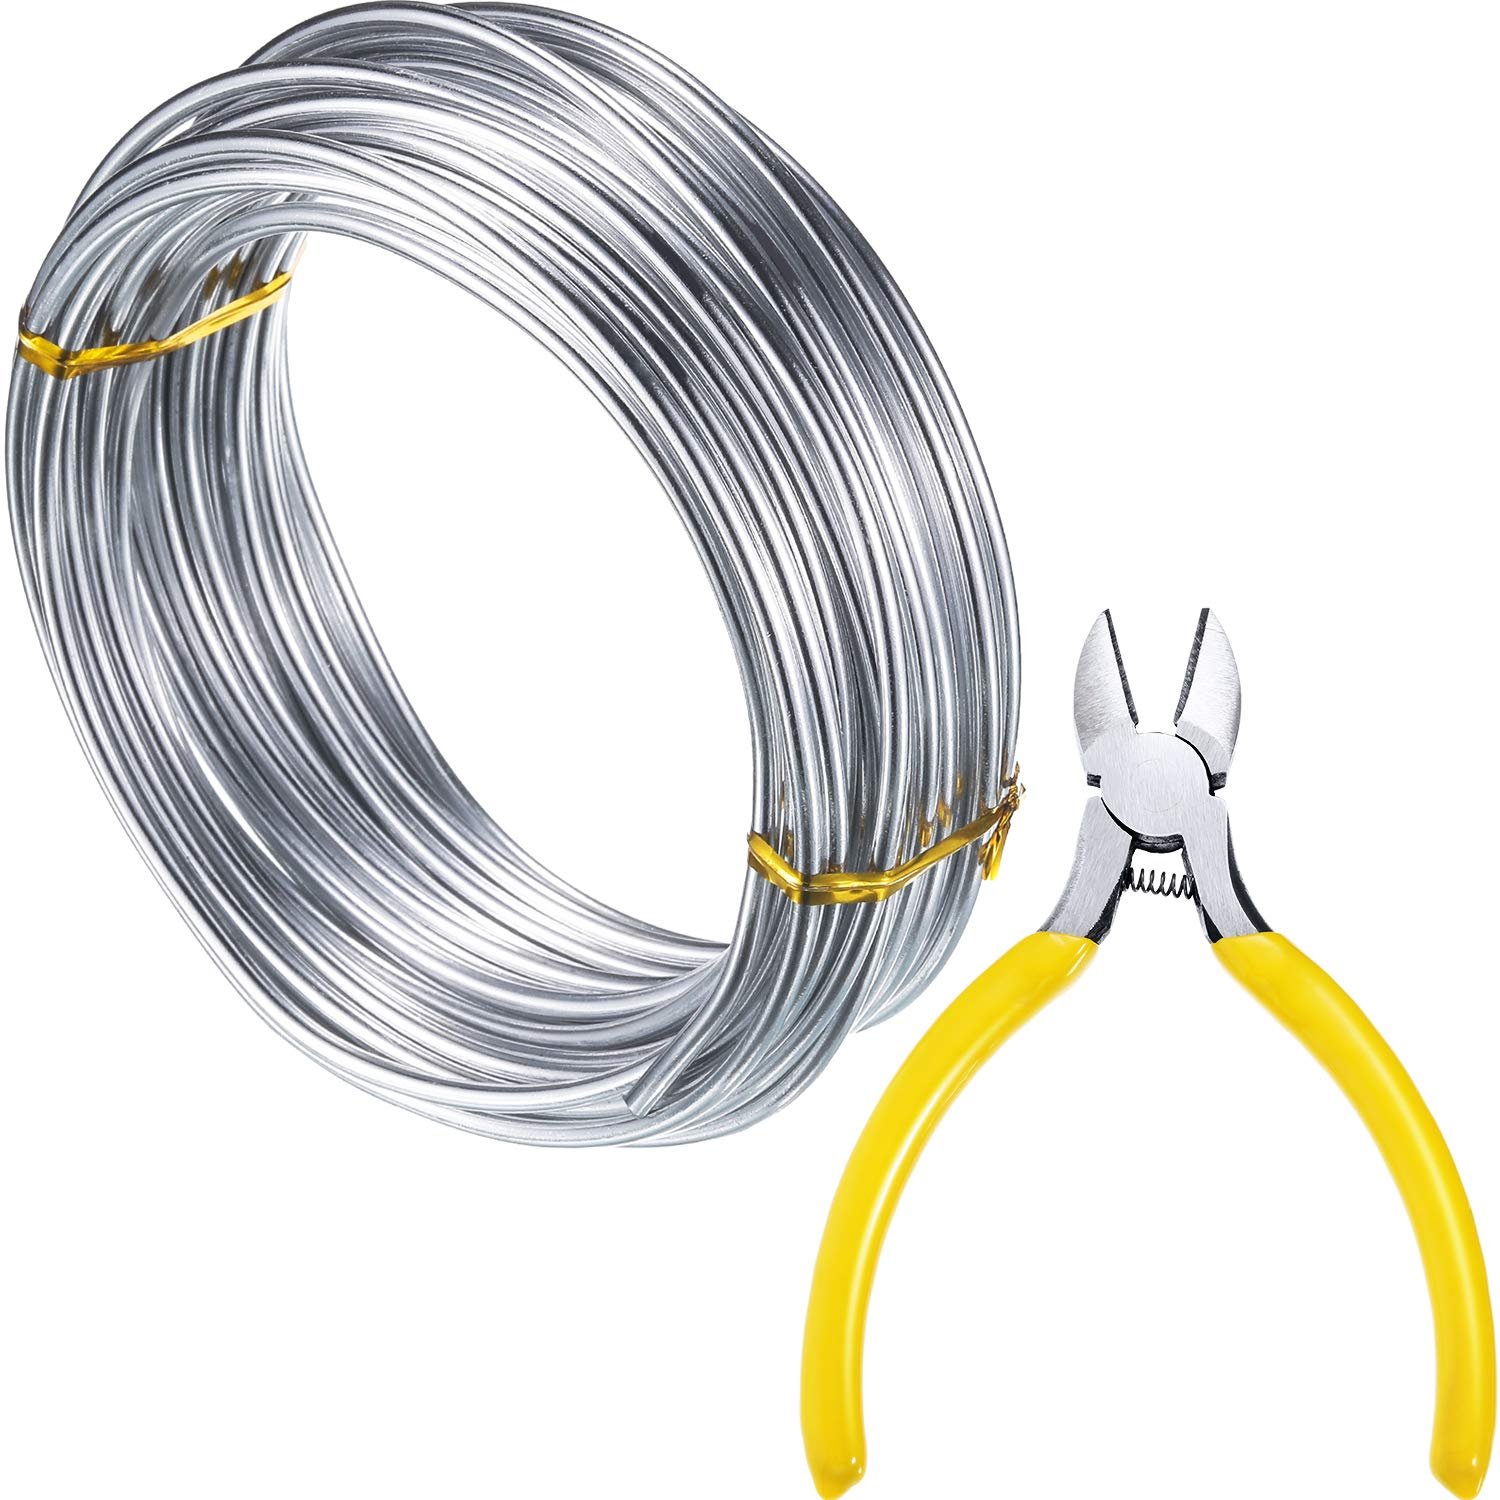 Tatuo 10 m Silver Aluminum Wire (3 mm), DIY Craft Wire, Soft and Bendable, Add a Round-Nosed Plier to Cut by Tatuo